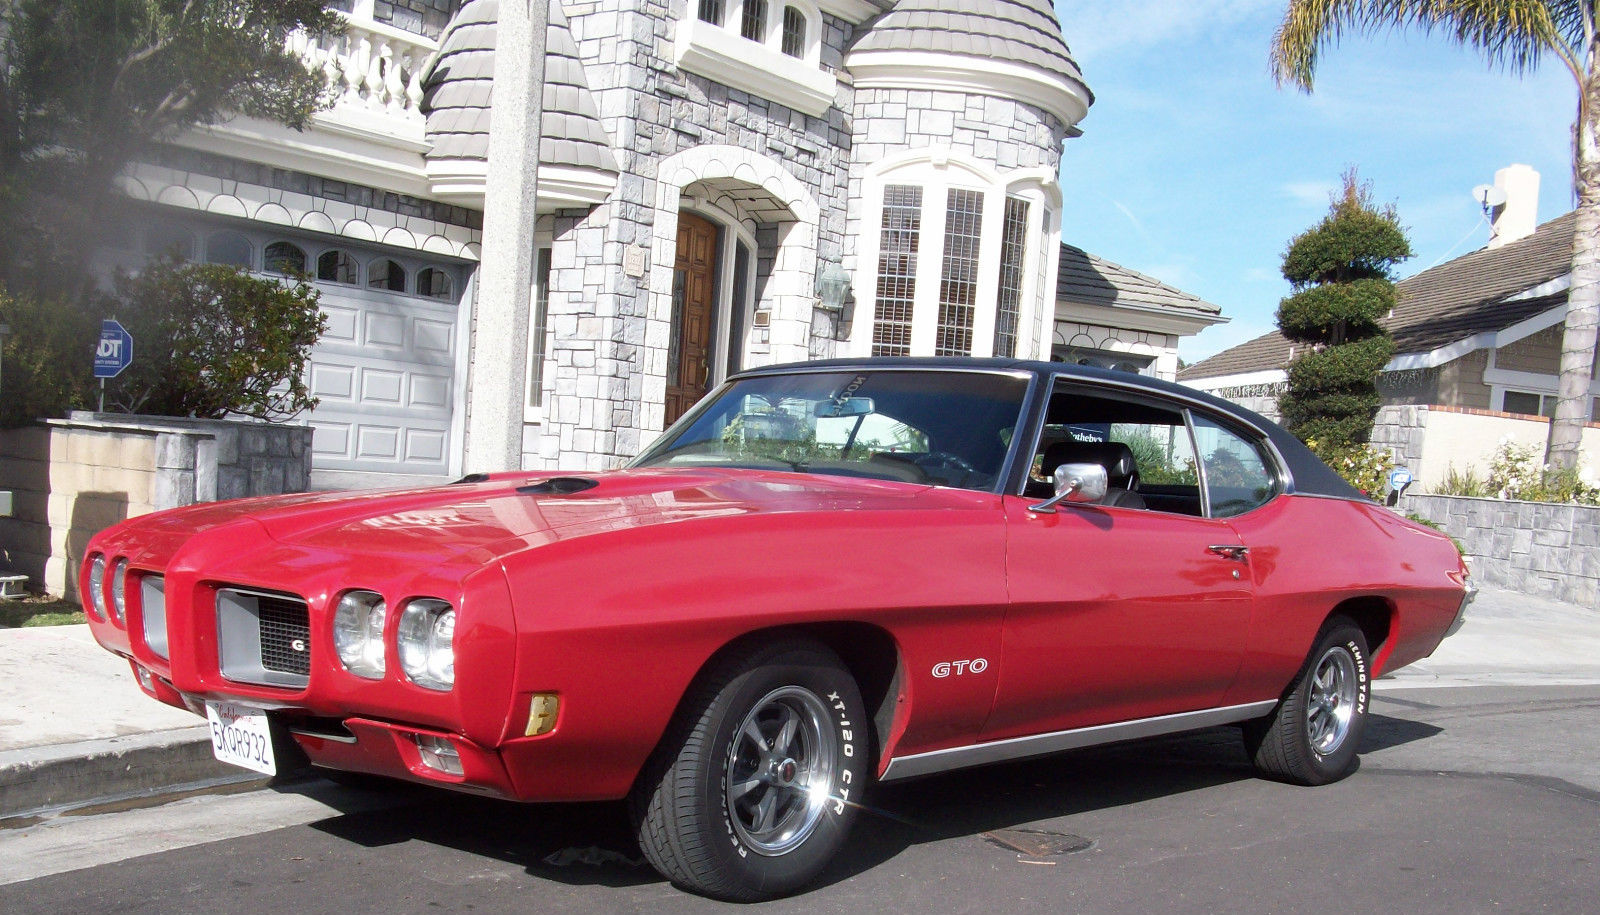 1970 pontiac gto for sale in huntington beach california. Black Bedroom Furniture Sets. Home Design Ideas